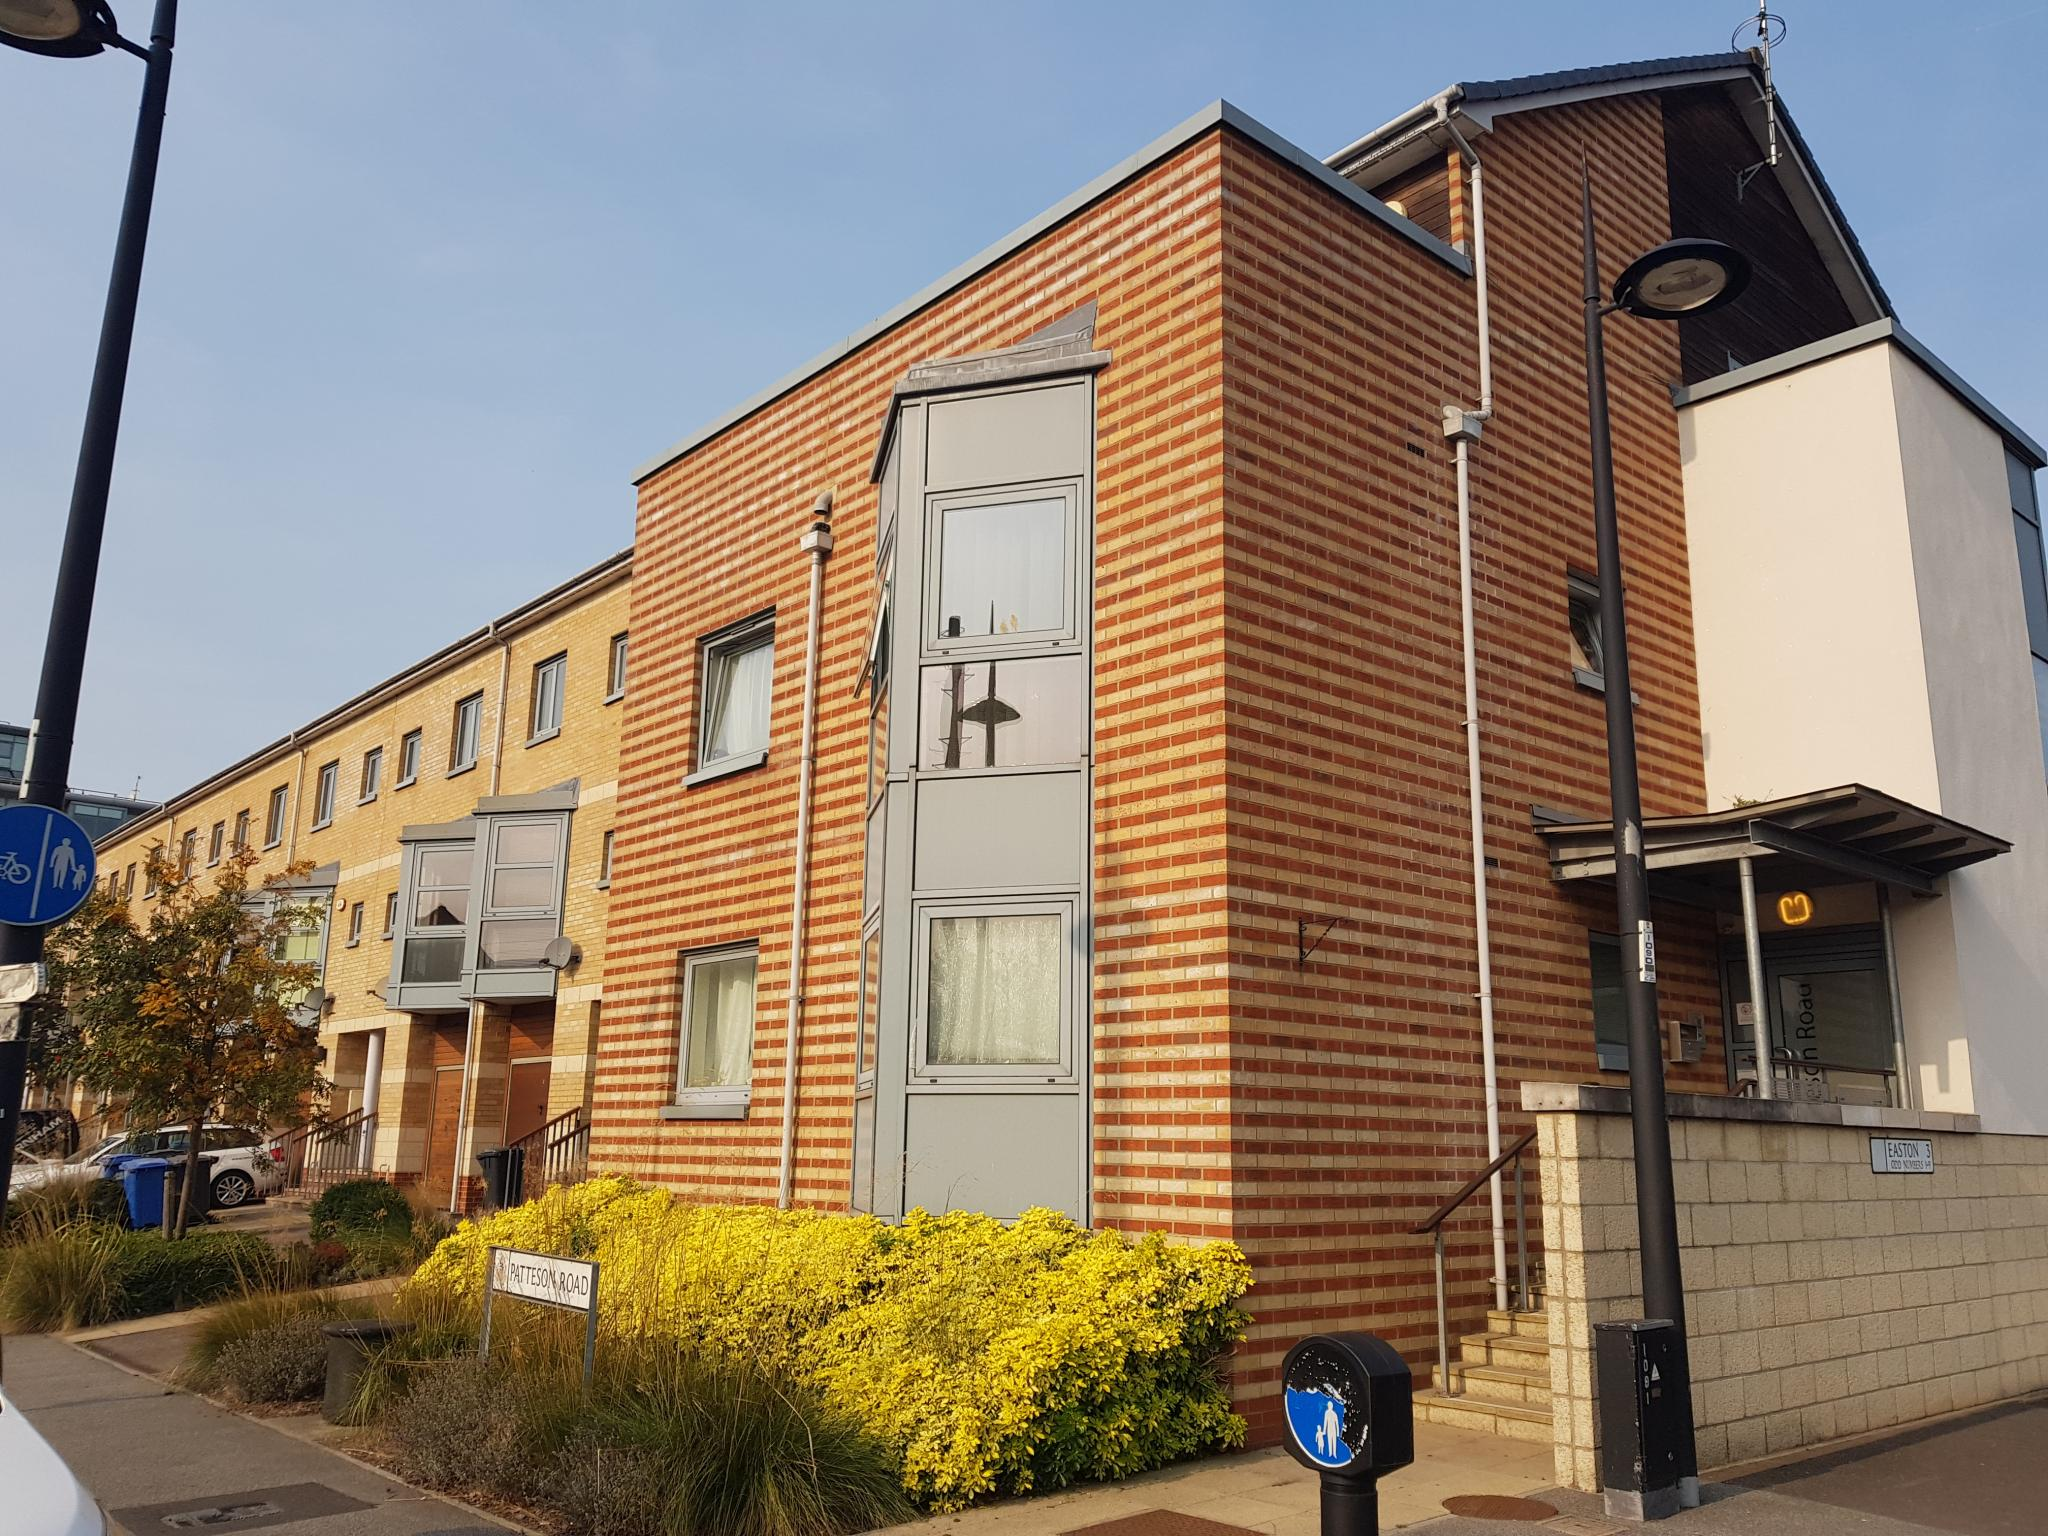 1 bedroom ground floor flat flat/apartment For Sale in Ipswich - Photograph 1